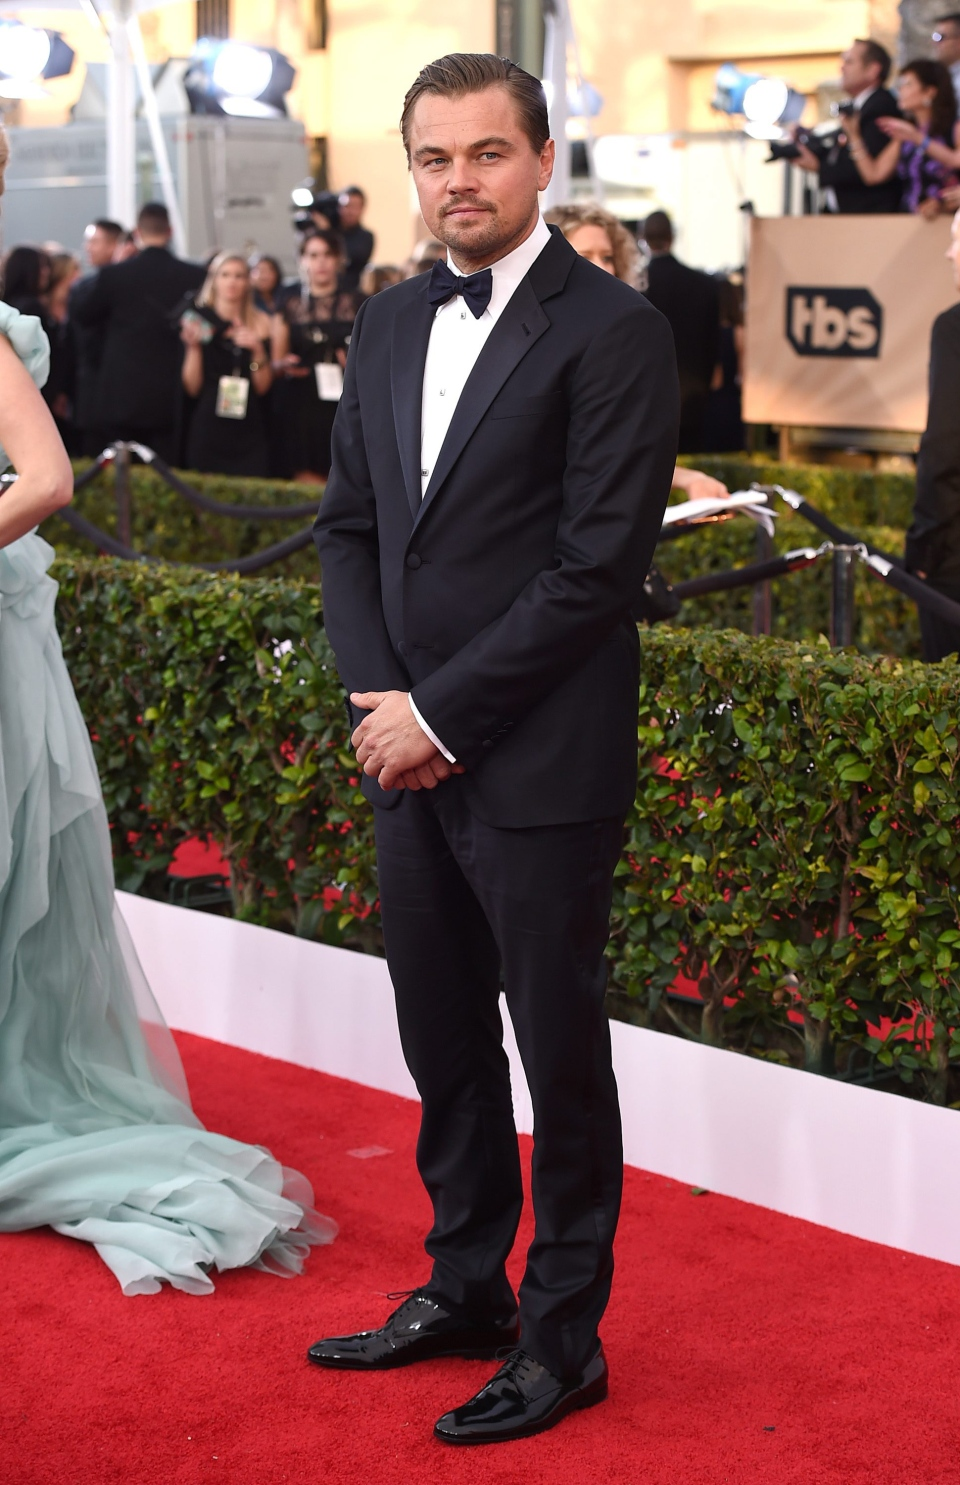 Leonardo DiCaprio arrives at the 22nd annual Screen Actors Guild Awards at the Shrine Auditorium & Expo Hall on Saturday, Jan. 30, 2016, in Los Angeles. (Photo by Jordan Strauss / Invision / AP)